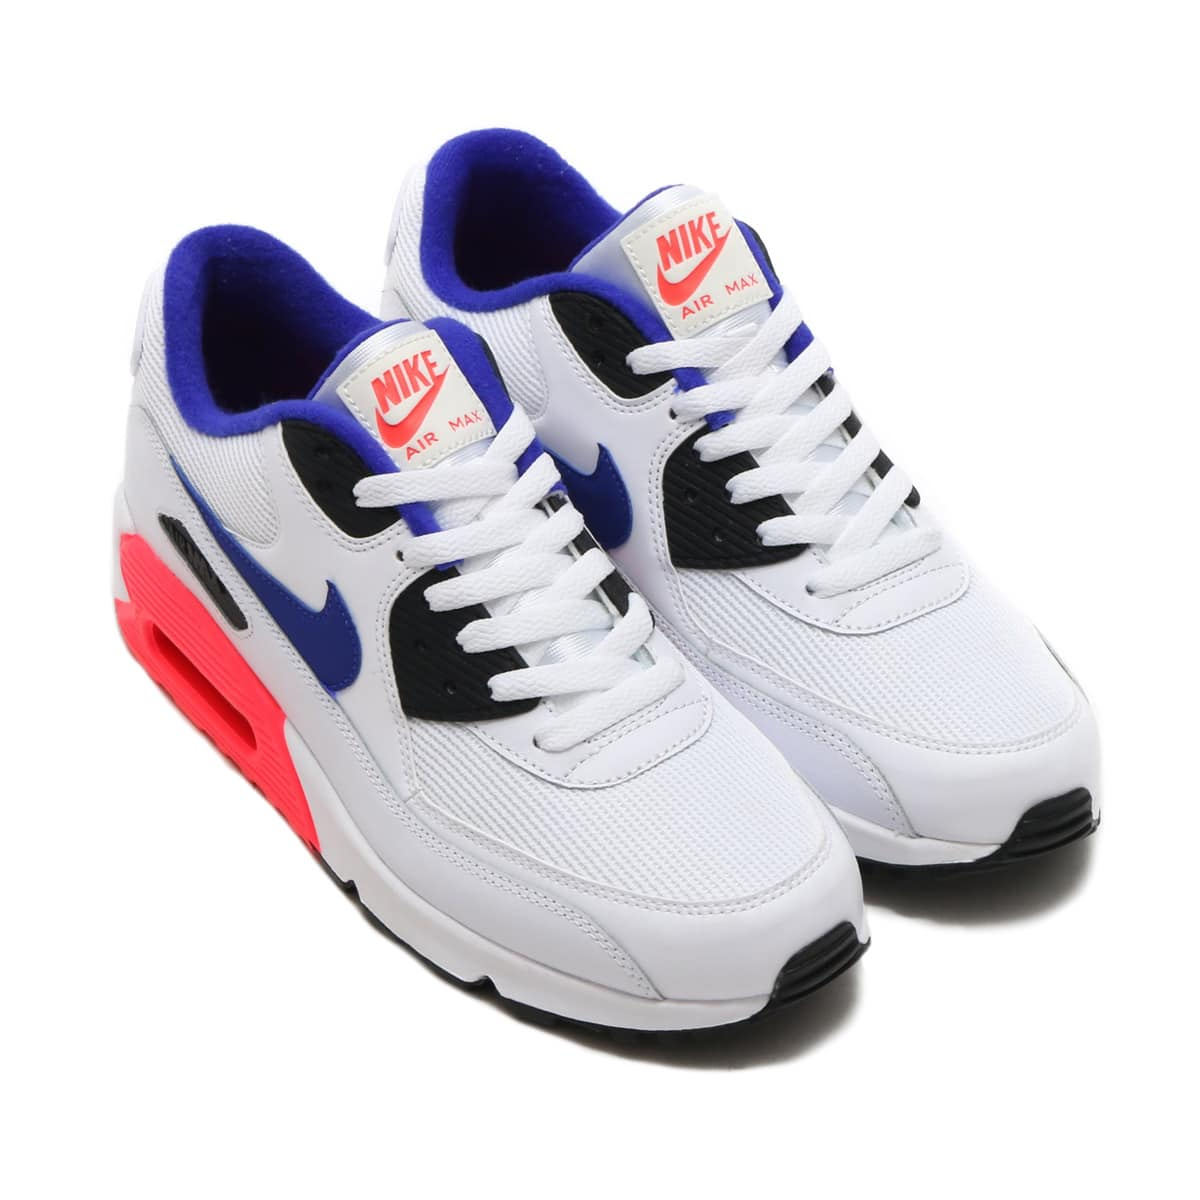 NIKE AIR MAX 90 ESSENTIAL  WHITE/ULTRAMARINE-SOLAR RED-BLACK_photo_large